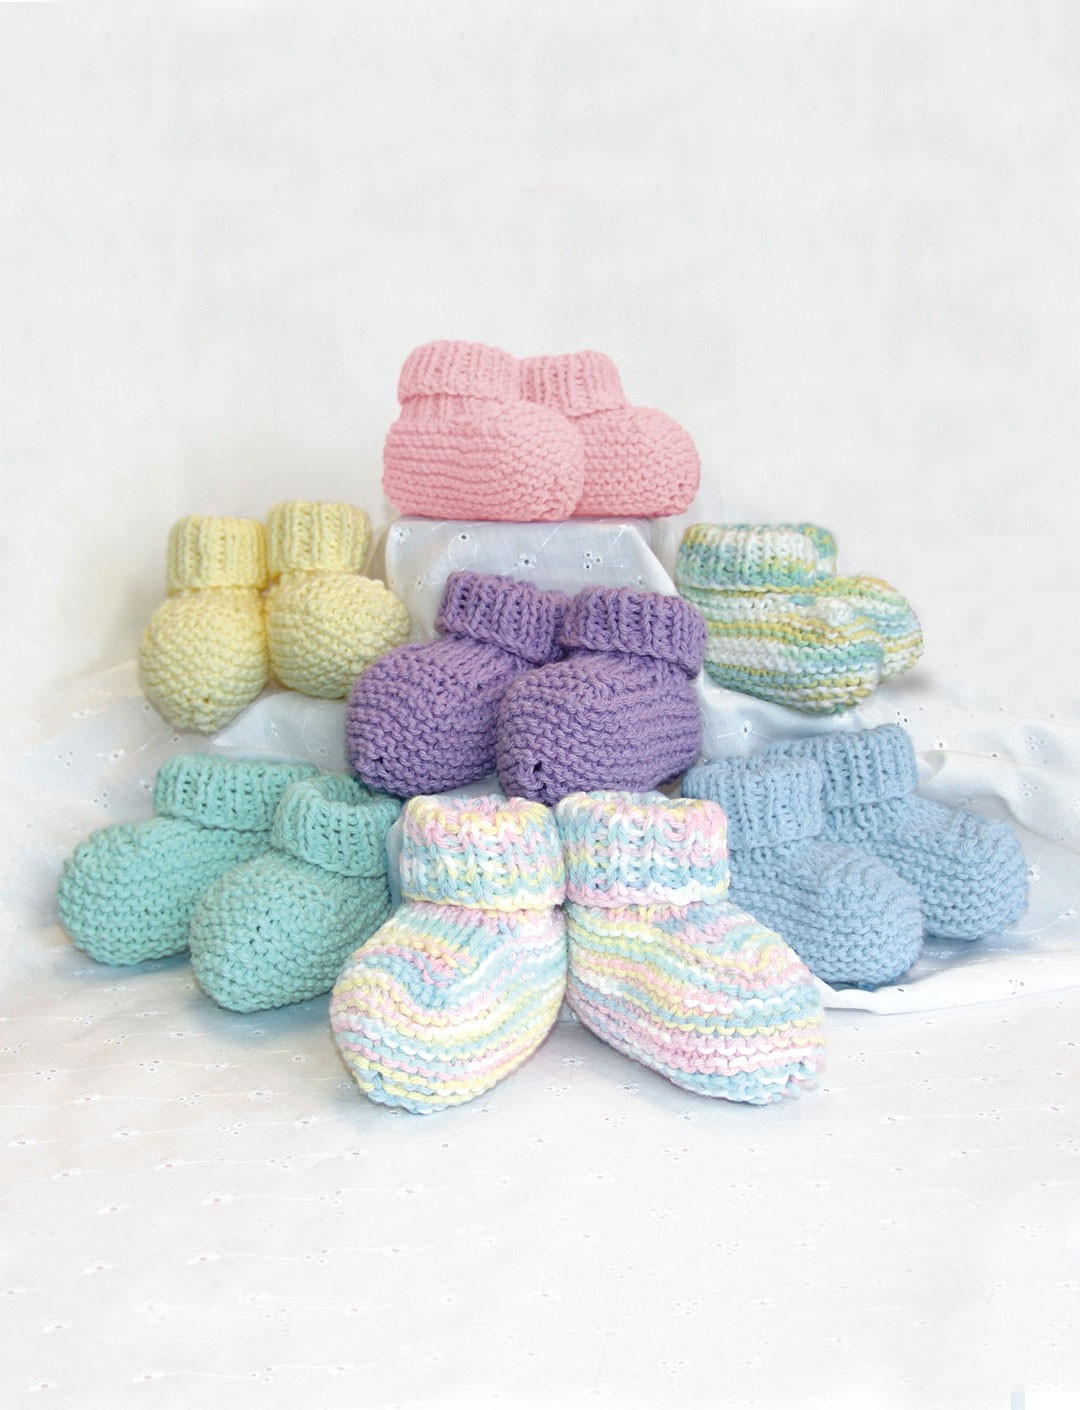 Best Of Knit Bibs and Booties Patterns Free Easy Knitting Patterns Of Gorgeous 46 Models Free Easy Knitting Patterns